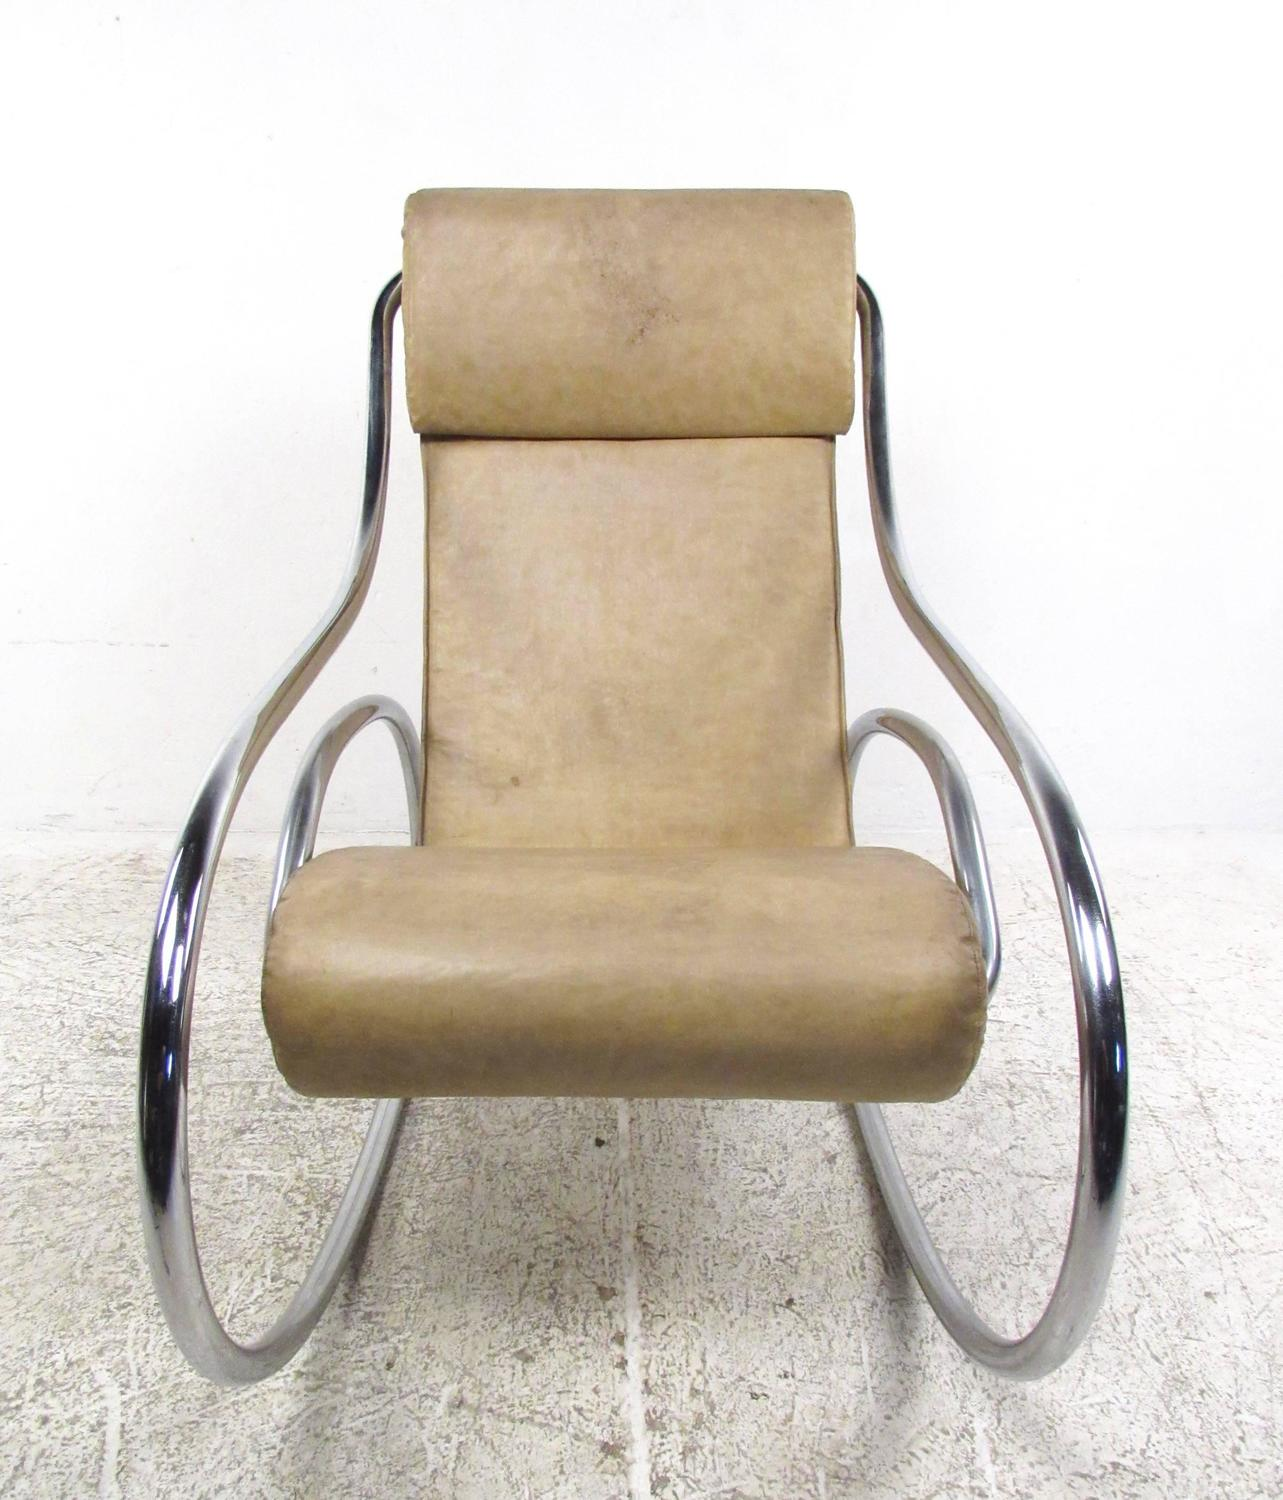 Mid Century Chairs For Sale: Mid-Century Modern Tubular Chrome Rocking Chair For Sale